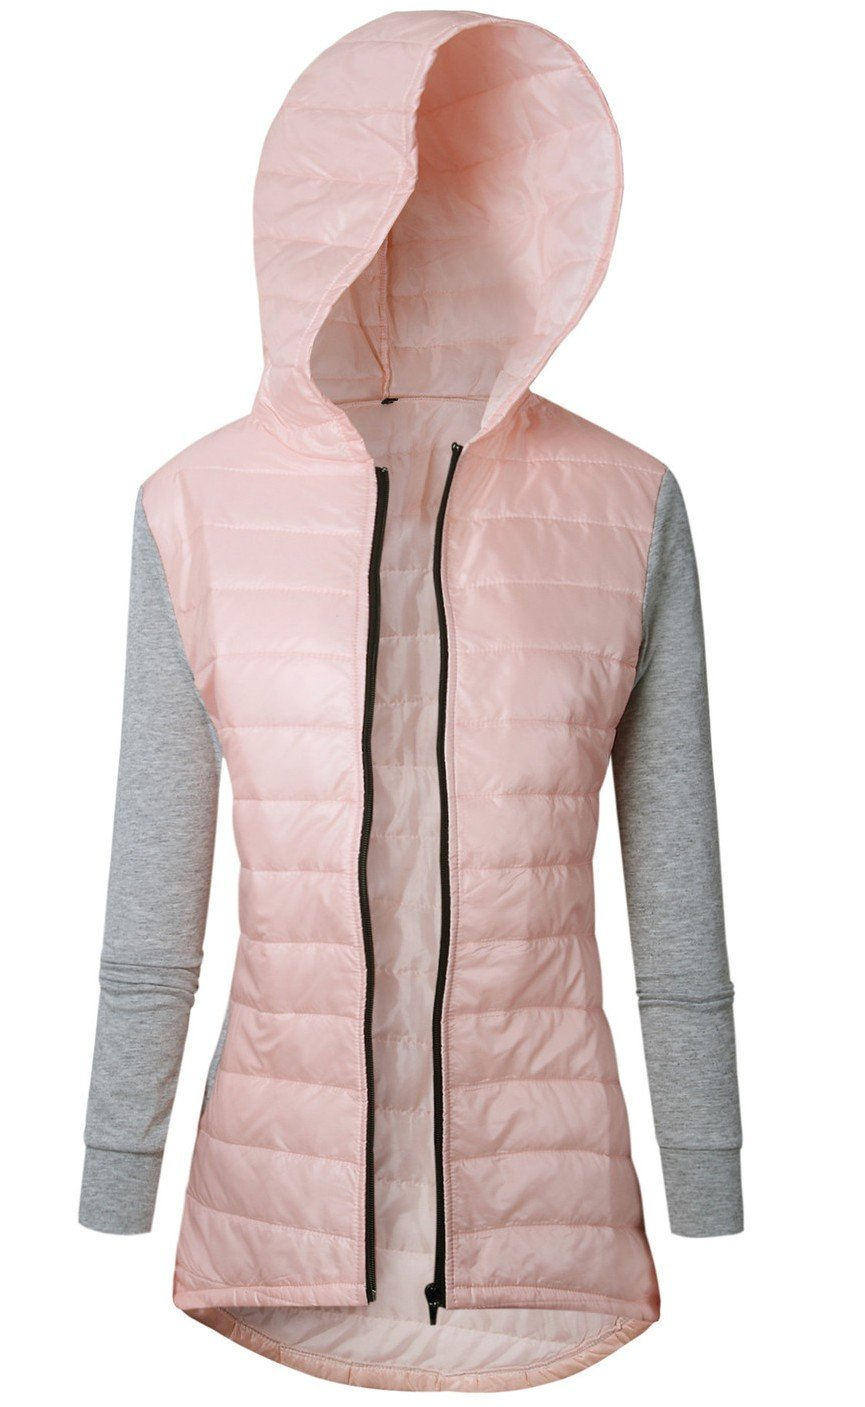 Hood Hooded Hoodie Zippered Zipper Front Zip Up Warm Padded Quilted Puffer Patchwork High Low Hem Jacket Coat Top Pink S